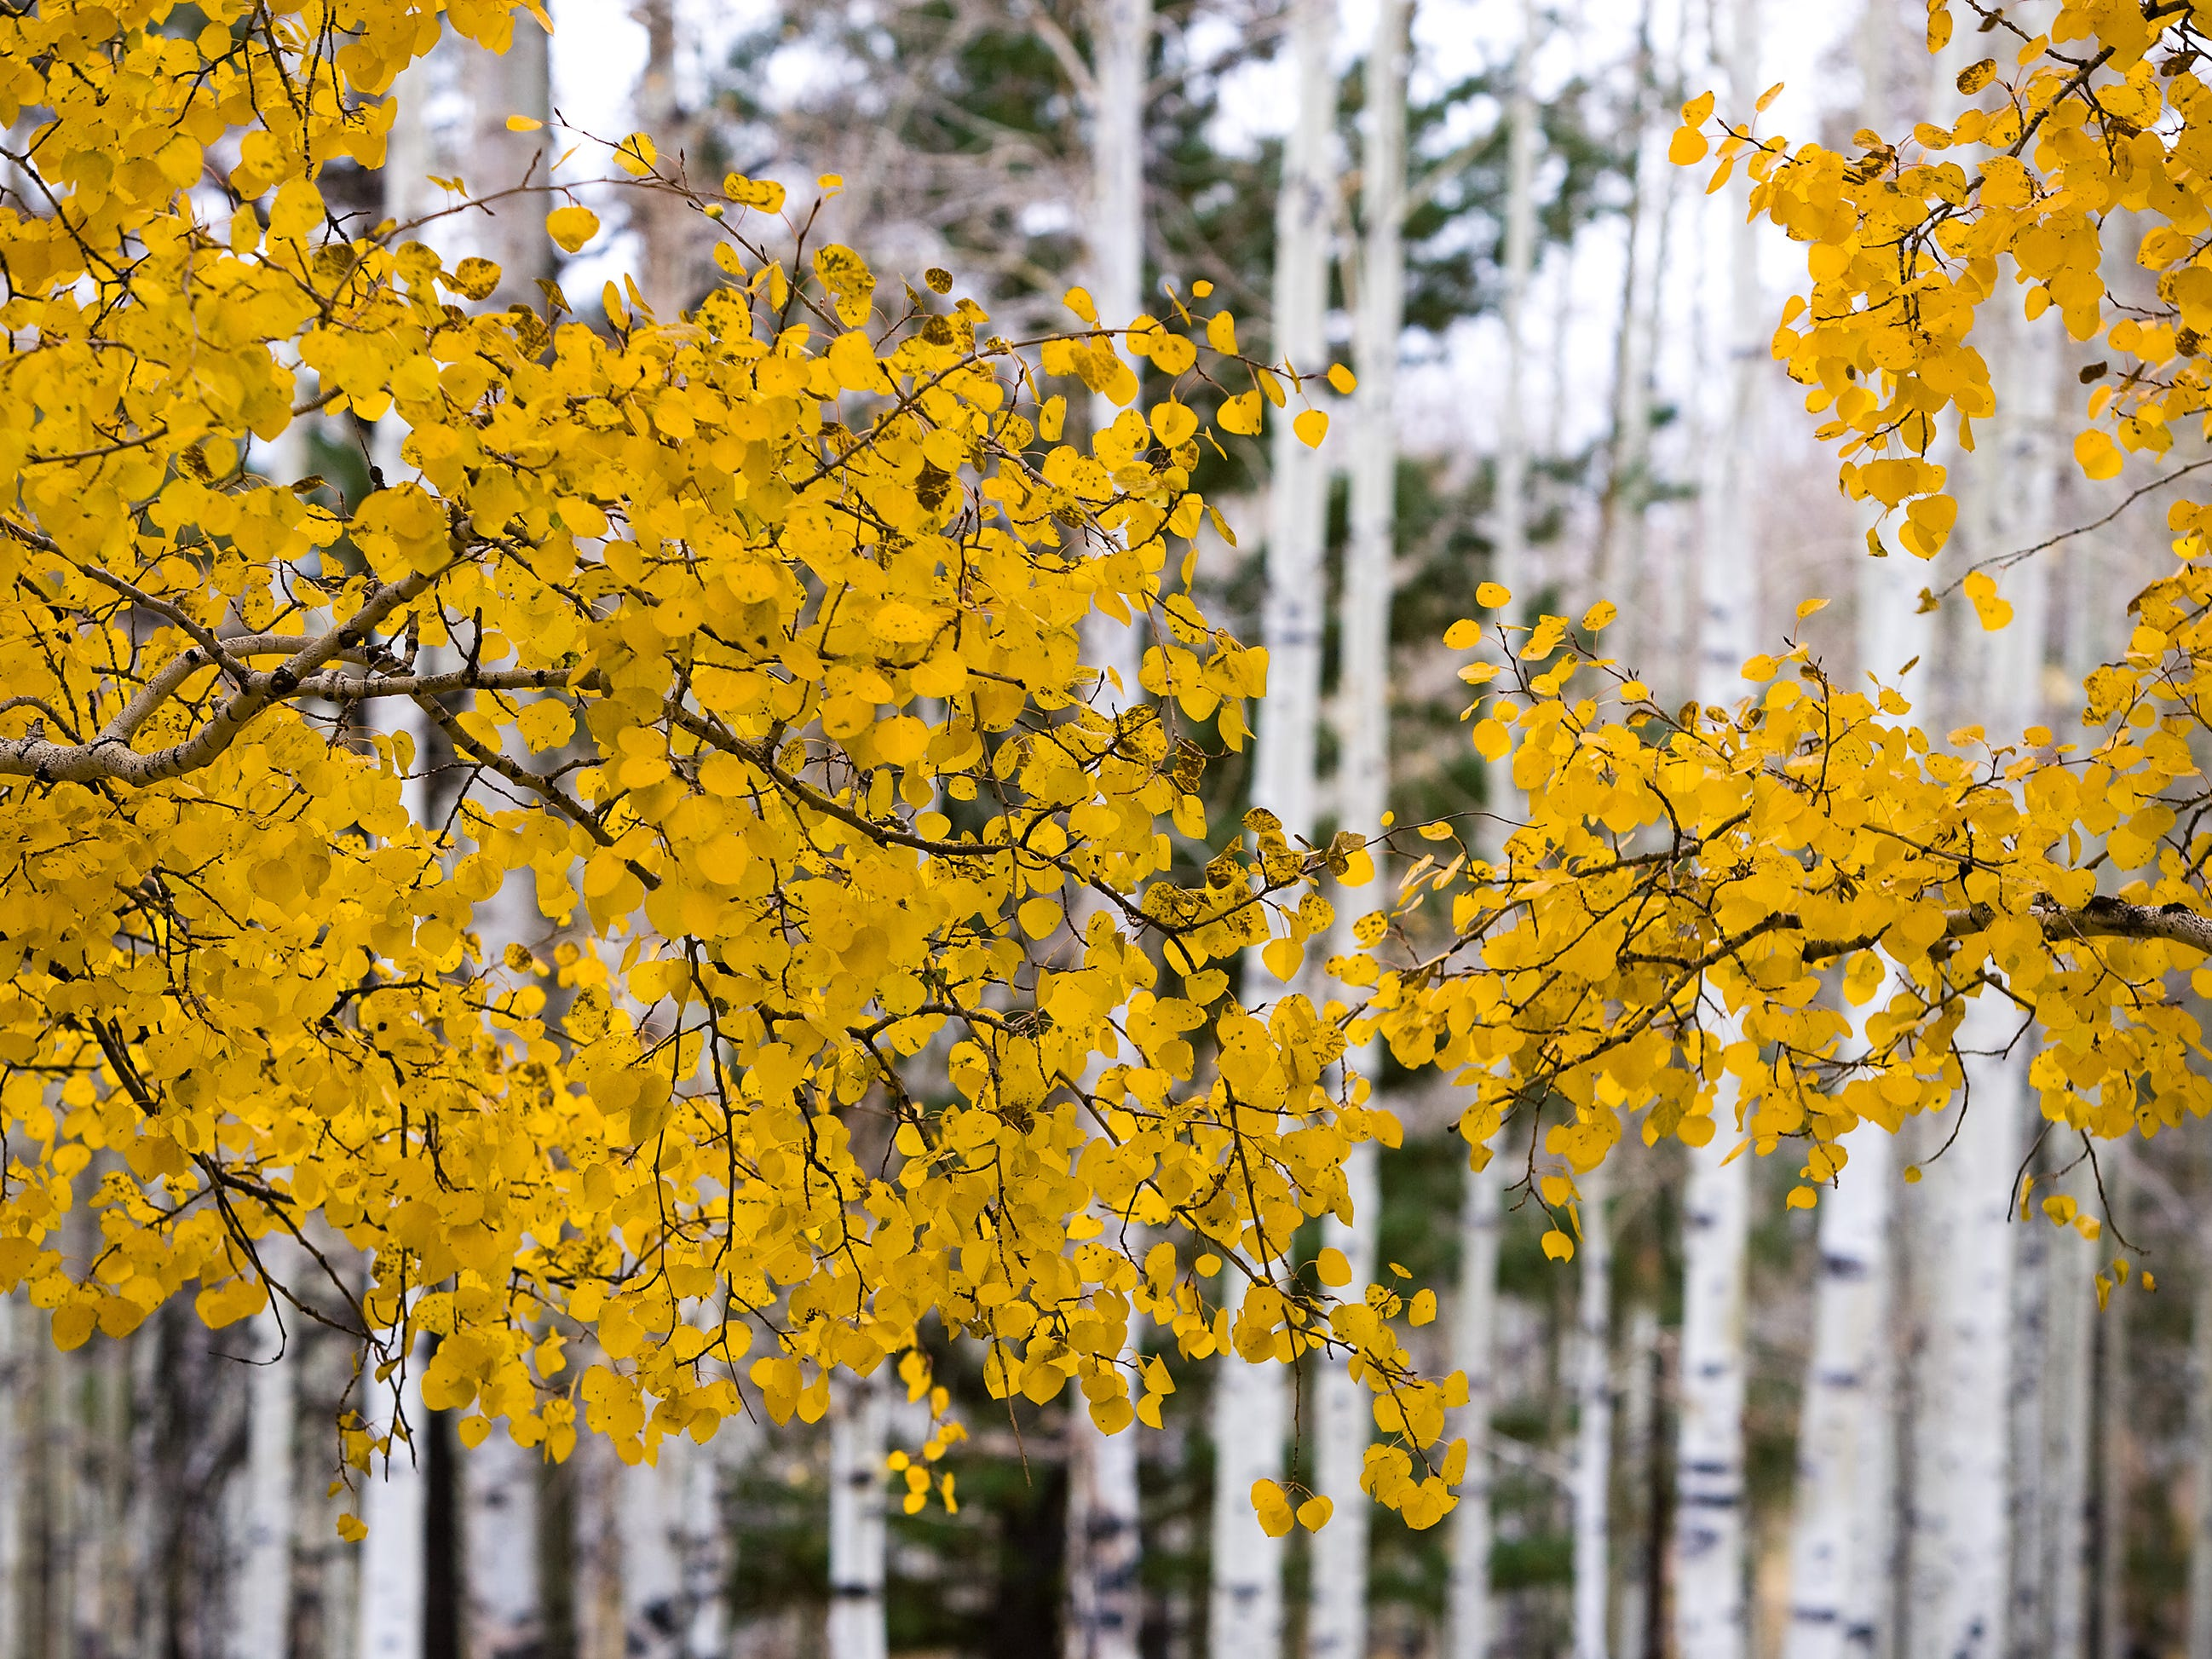 A few trees with fall colors remain off of Forest Road 151 (Hart Prairie Road) in Flagstaff on Thursday, October 22, 2009.